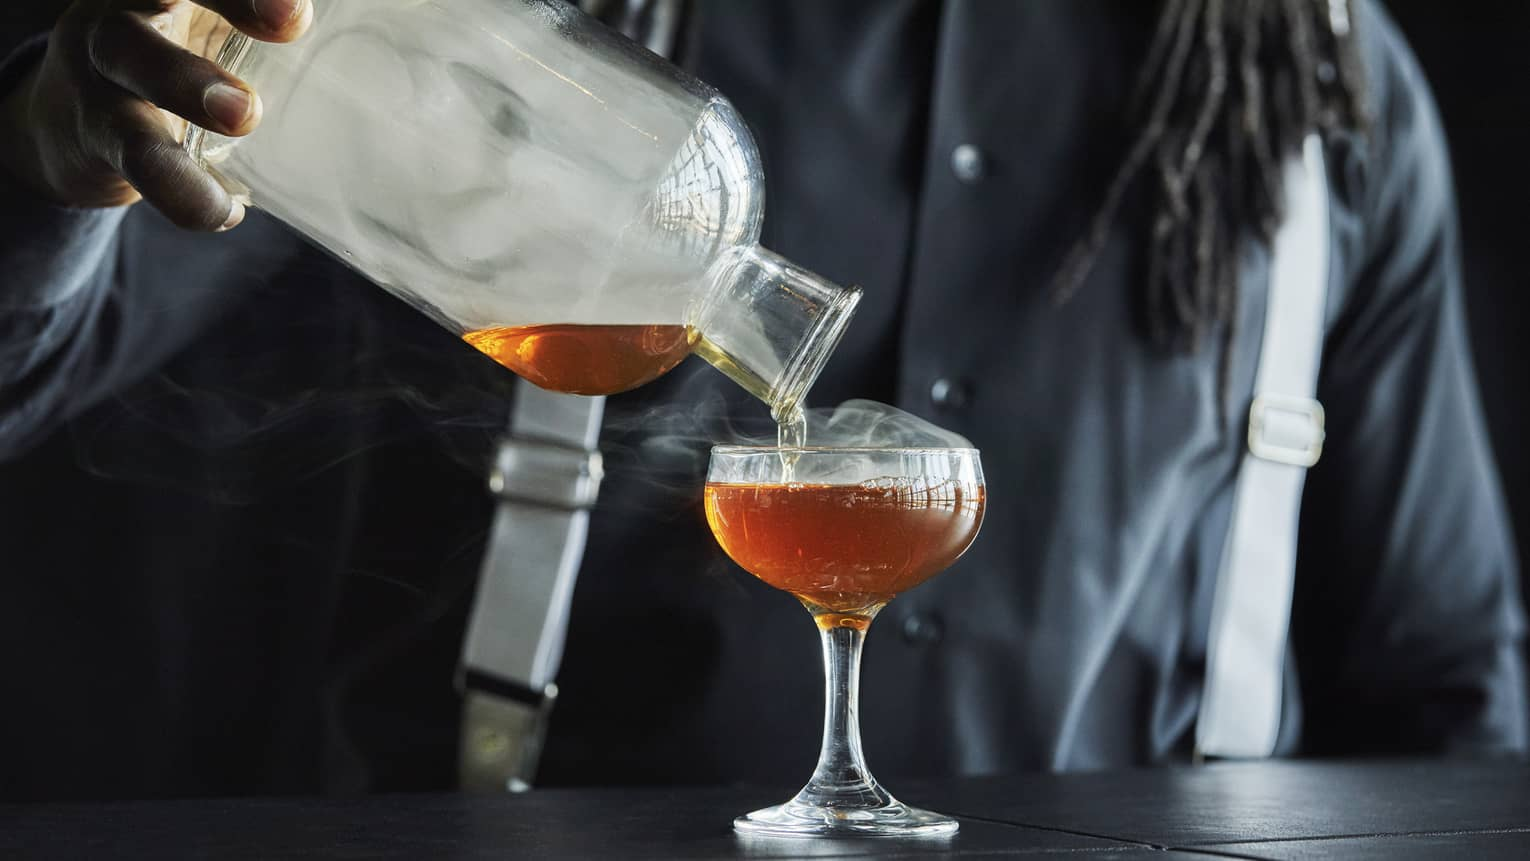 Smoke rolls off the decanter as a Four Seasons staff member pours bourbon into a coupe glass